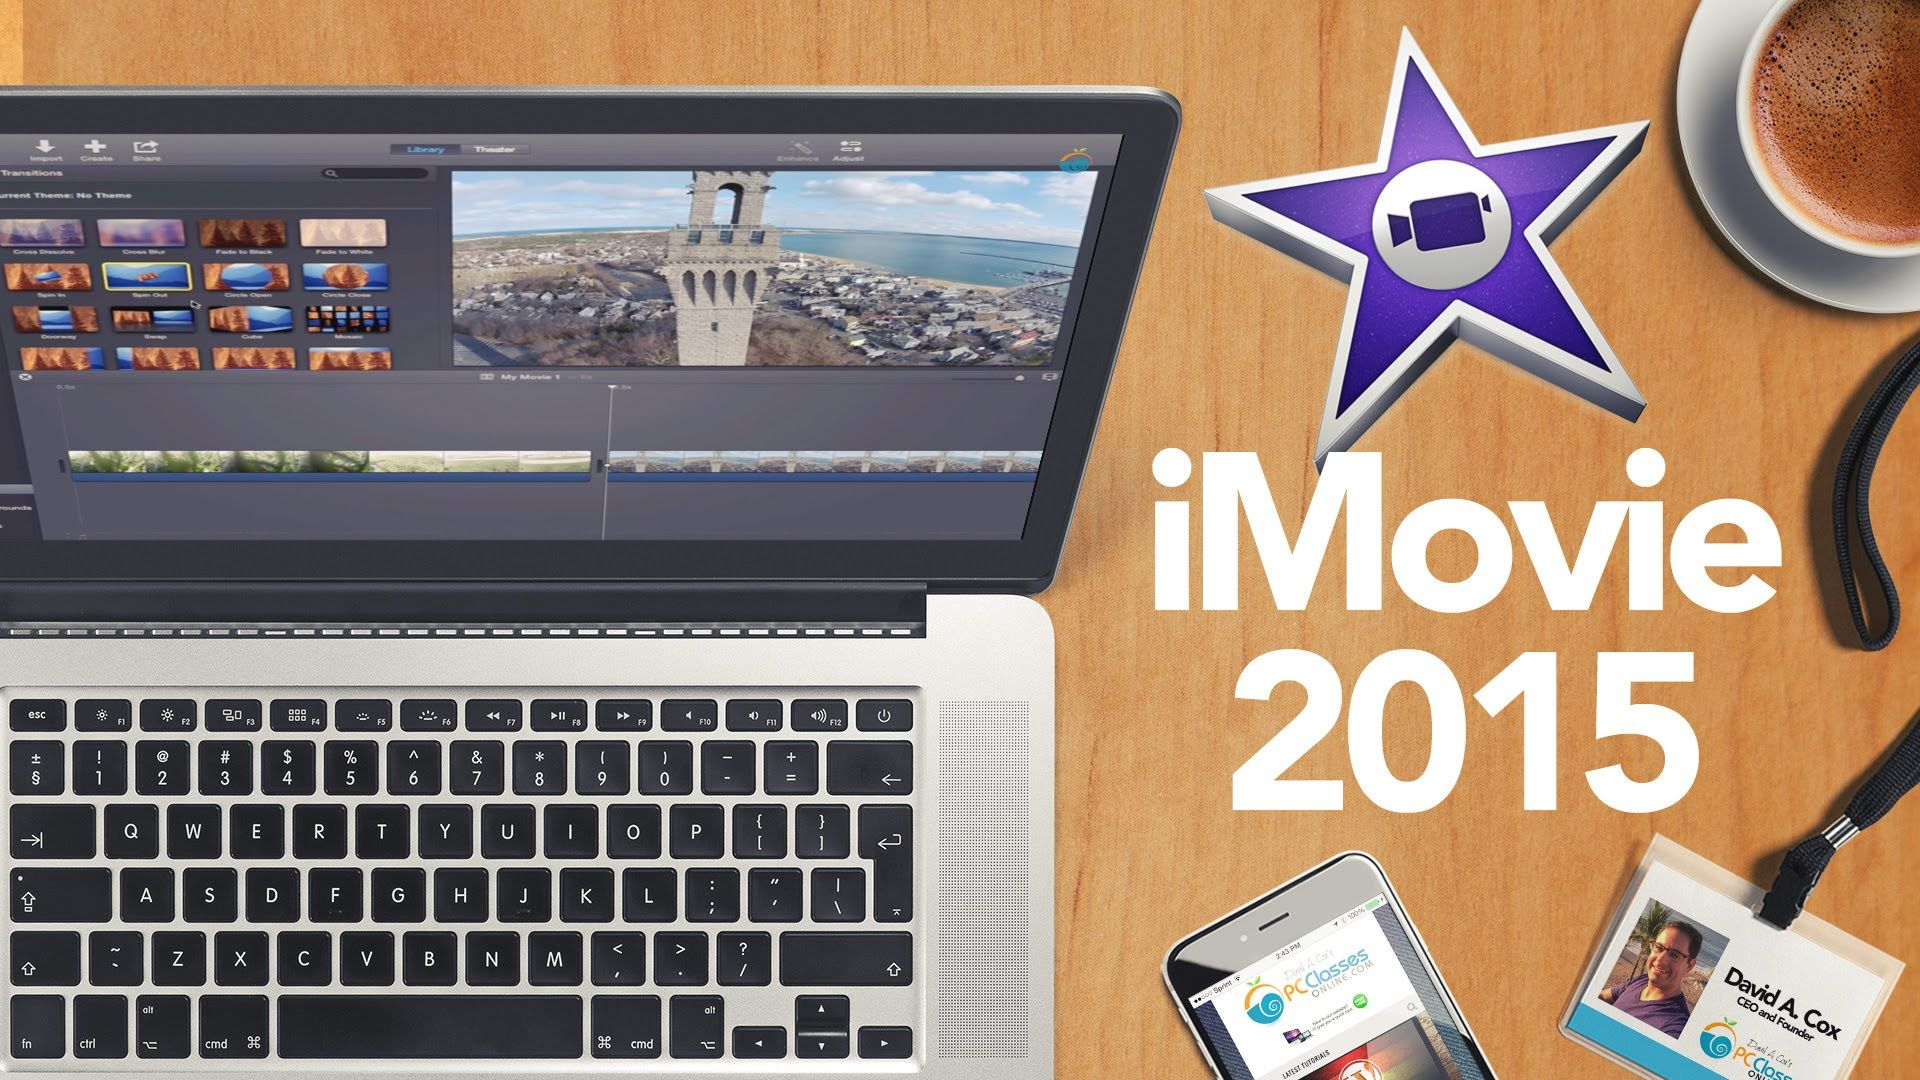 This iMovie tutorial will teach you all the basics of video